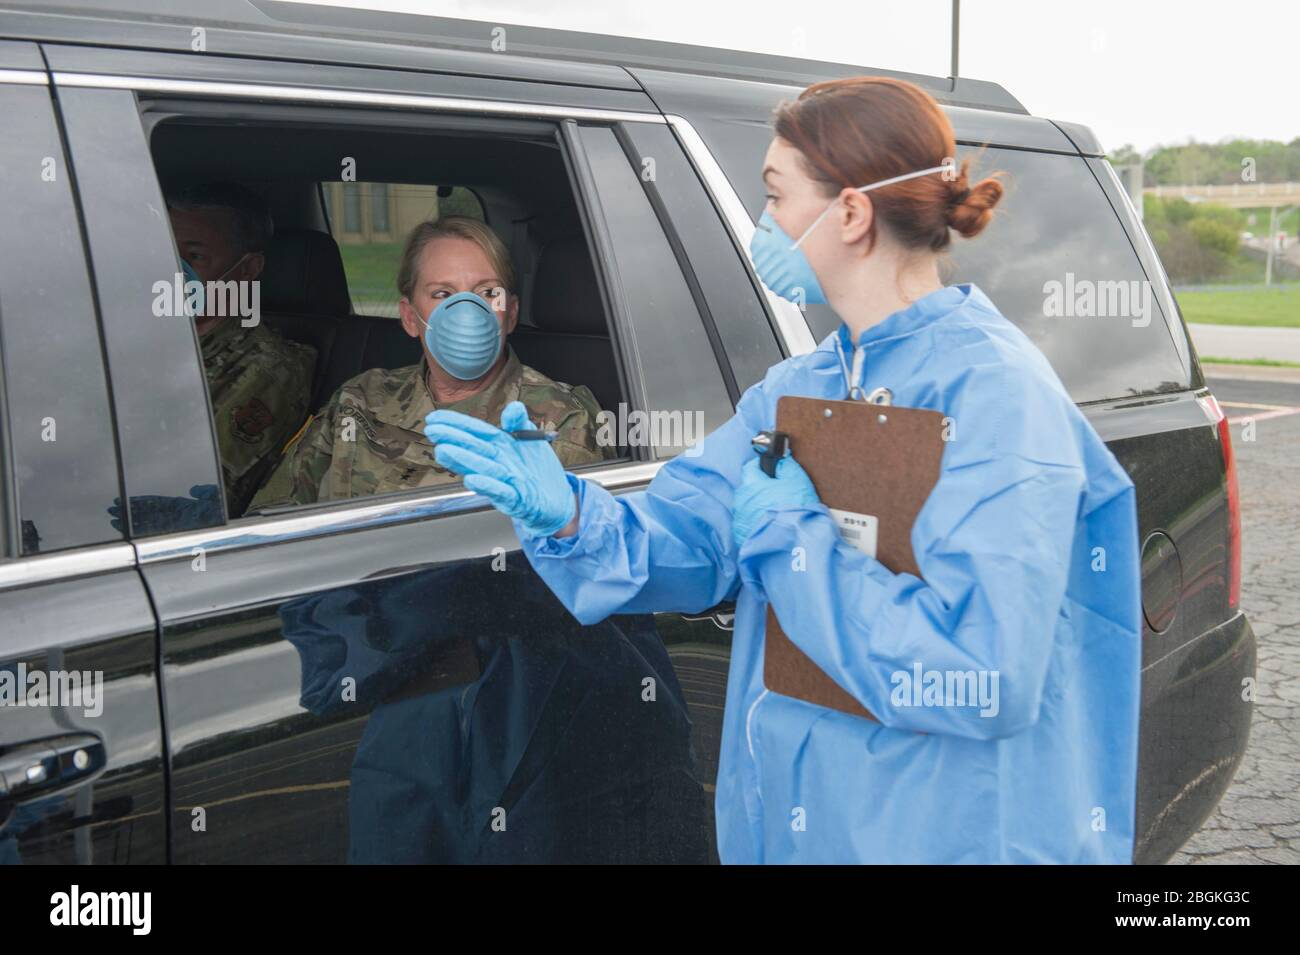 Texas Army National Guard Spc. Amanda Patton, assigned to the Medical Readiness Clinic Detachment, performs a mock drive-through COVID-19 screening with Major General Tracy R. Norris, the Adjutant General of Texas on March 18, 2020. Drive-through COVID-19 screening centers allow the public to receive COVID-19 tests while limiting physical contact to better protect healthcare workers and others waiting to be tested. (U.S. Army National Guard Photo by Andrew Ryan Smith/Released) Stock Photo